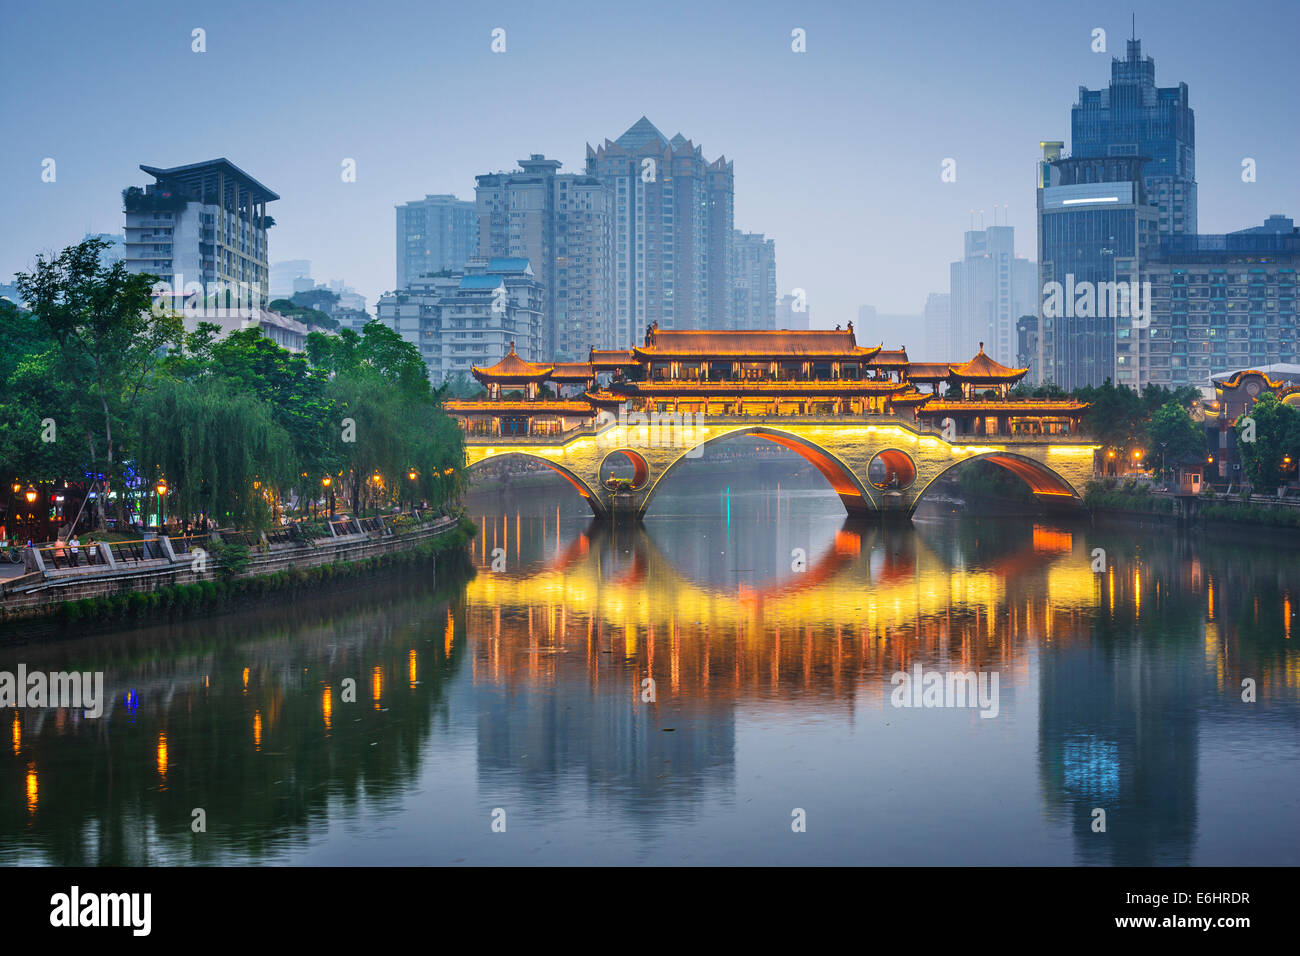 Chengdu, Sichuan, China at Anshun Bridge Stock Photo ...